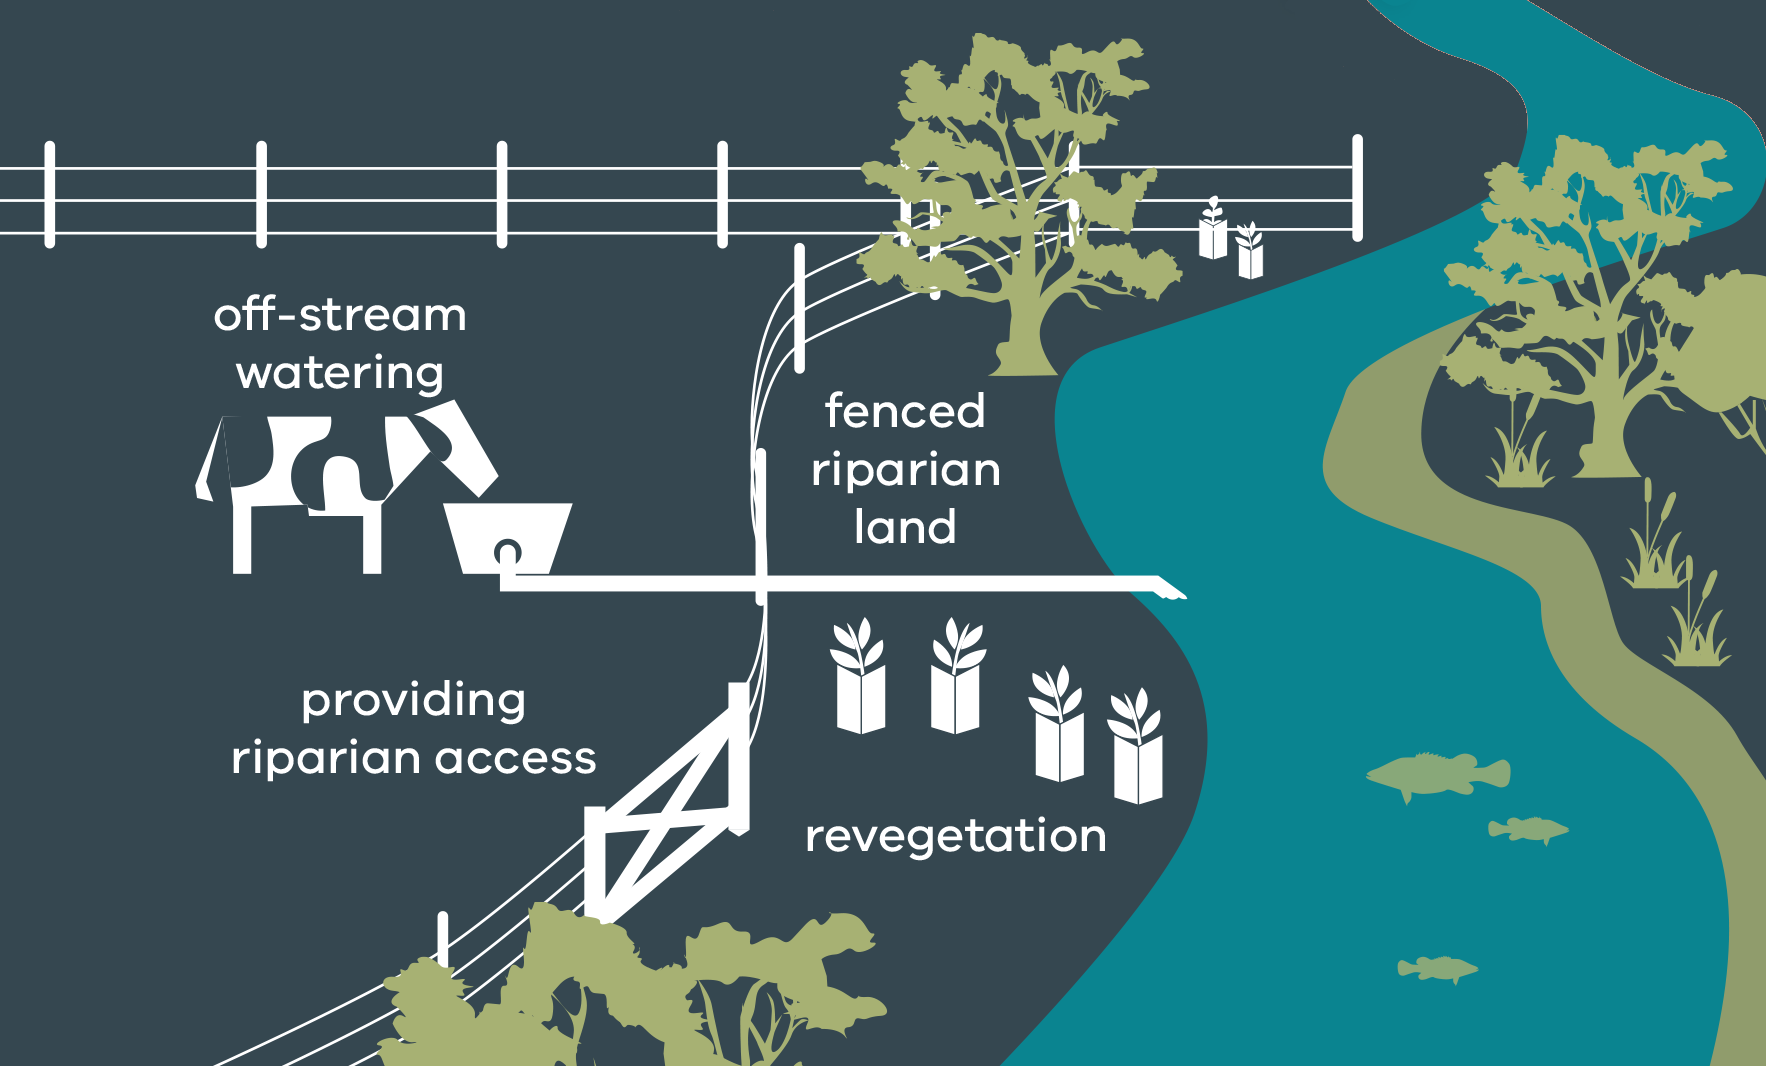 Stylised image showing well-managed riparian land, including off-stream watering of livestock, fenced riparian land with gate access to water and revegetation